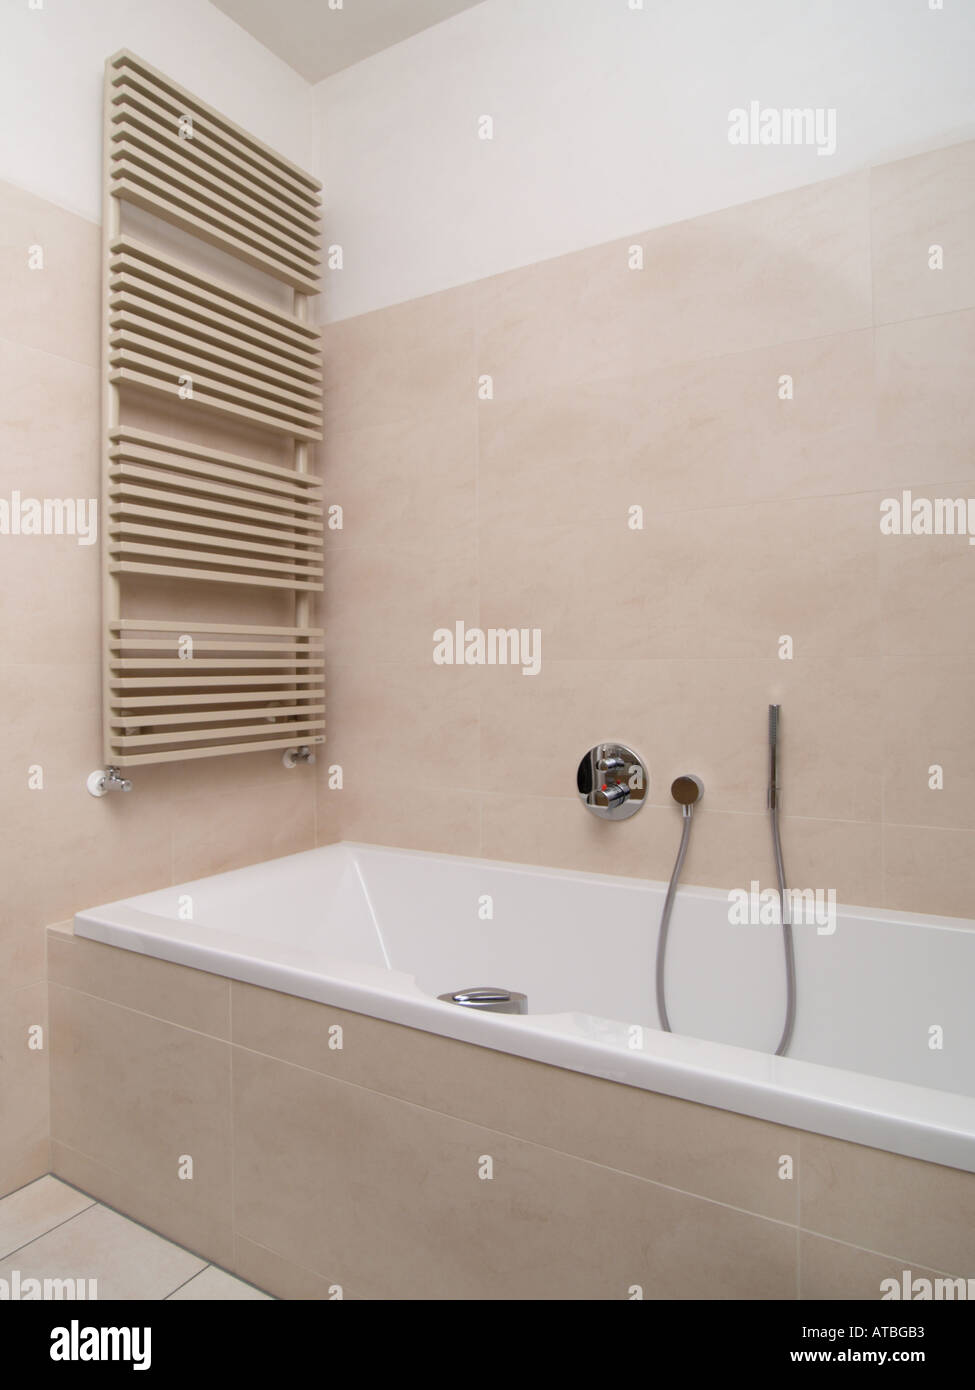 New modern style bathroom with design radiator heating and ...